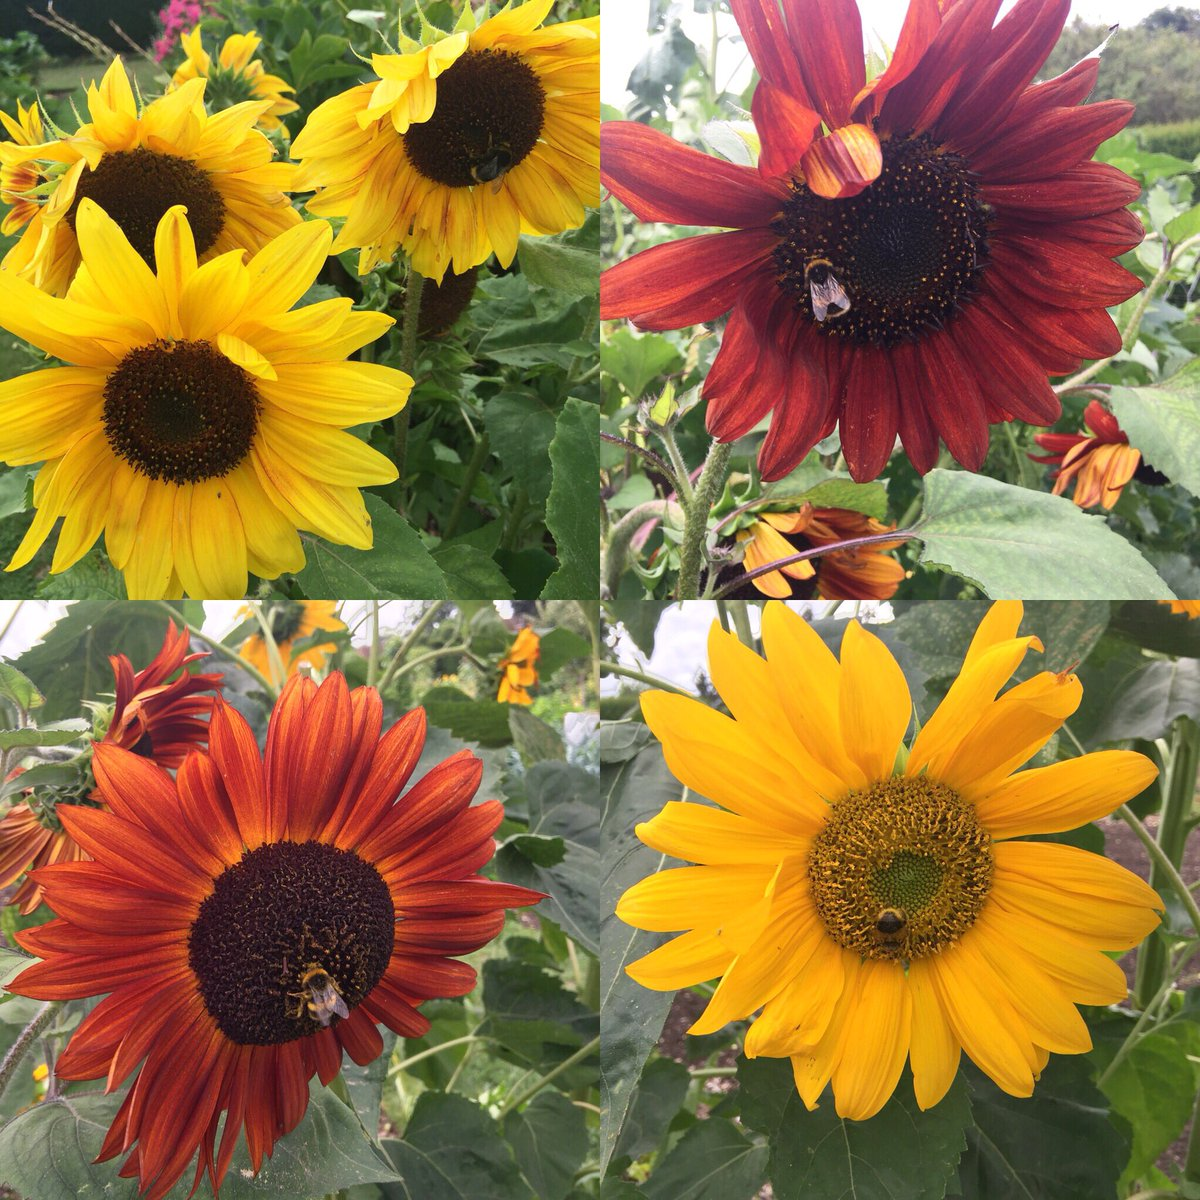 Tomorrow is the last day of our Open Season! Don't miss the opportunity of visiting our gorgeous gardens #walledgarden #sunflower #bees #yellowflowers #placetovisit #surreygarden #visitsurrey